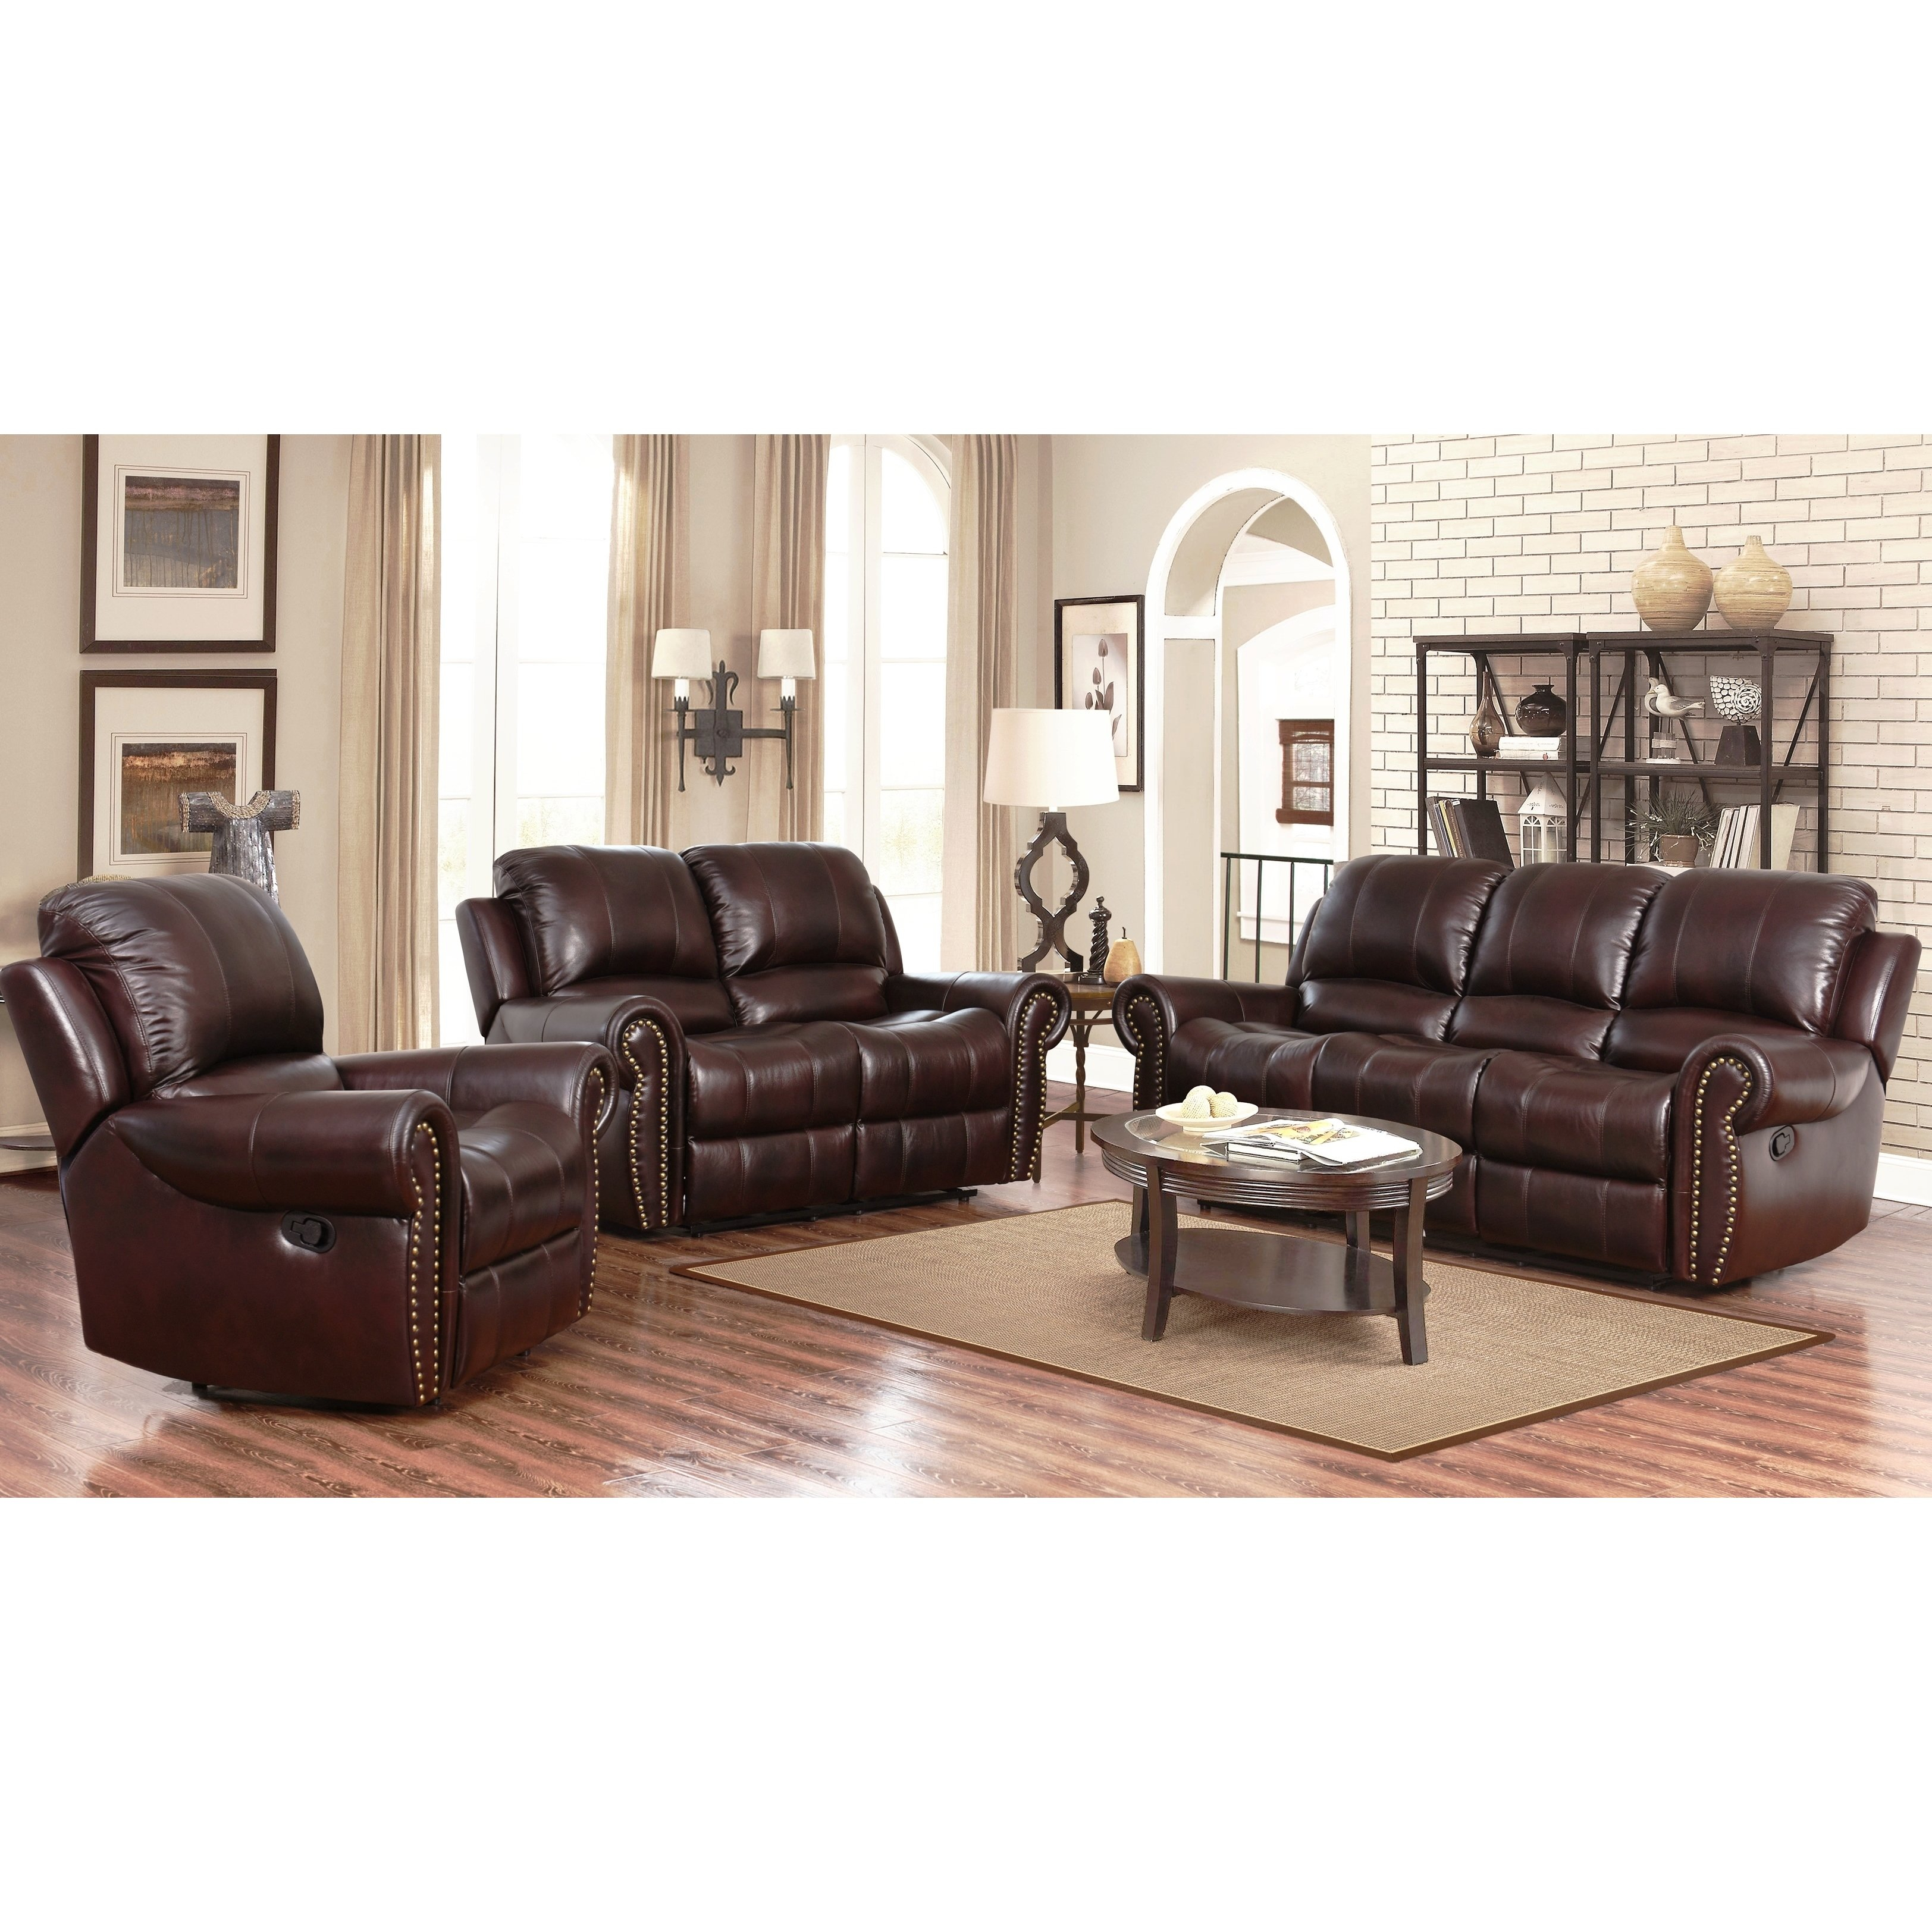 Shop Abson Broadway Top Grain Leather Reclining 3 Piece Living regarding 11 Smart Concepts of How to Upgrade Living Room Recliner Sets